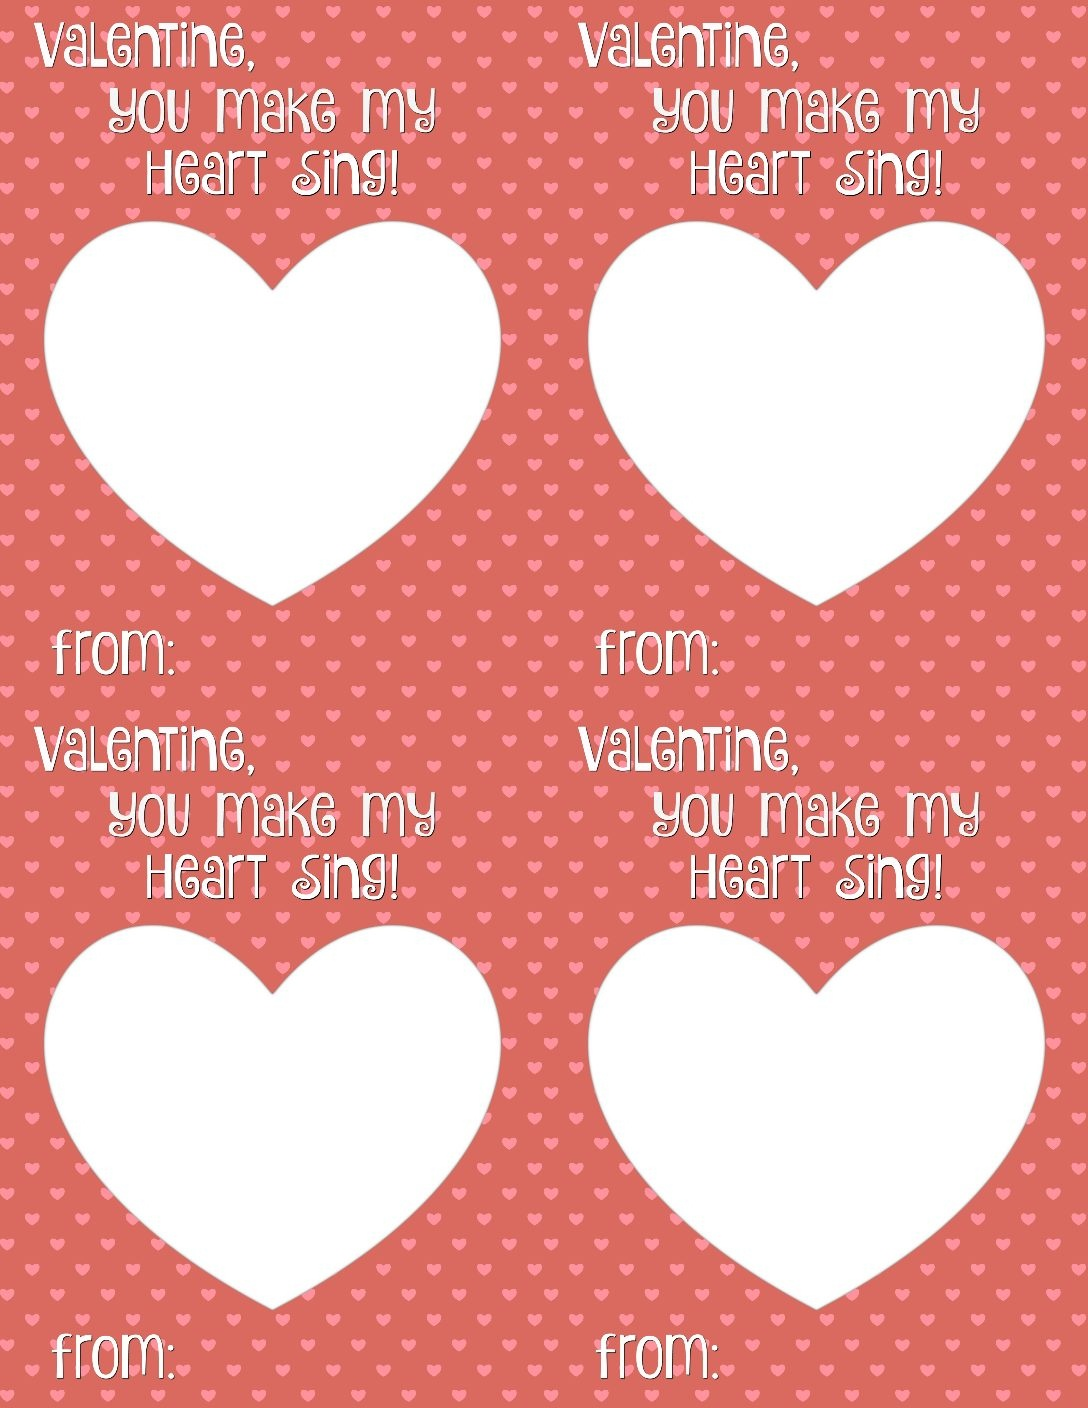 You Make My Heart Sing Valentine Card Printable - Smashed Peas & Carrots - Free Printable Valentine Cards